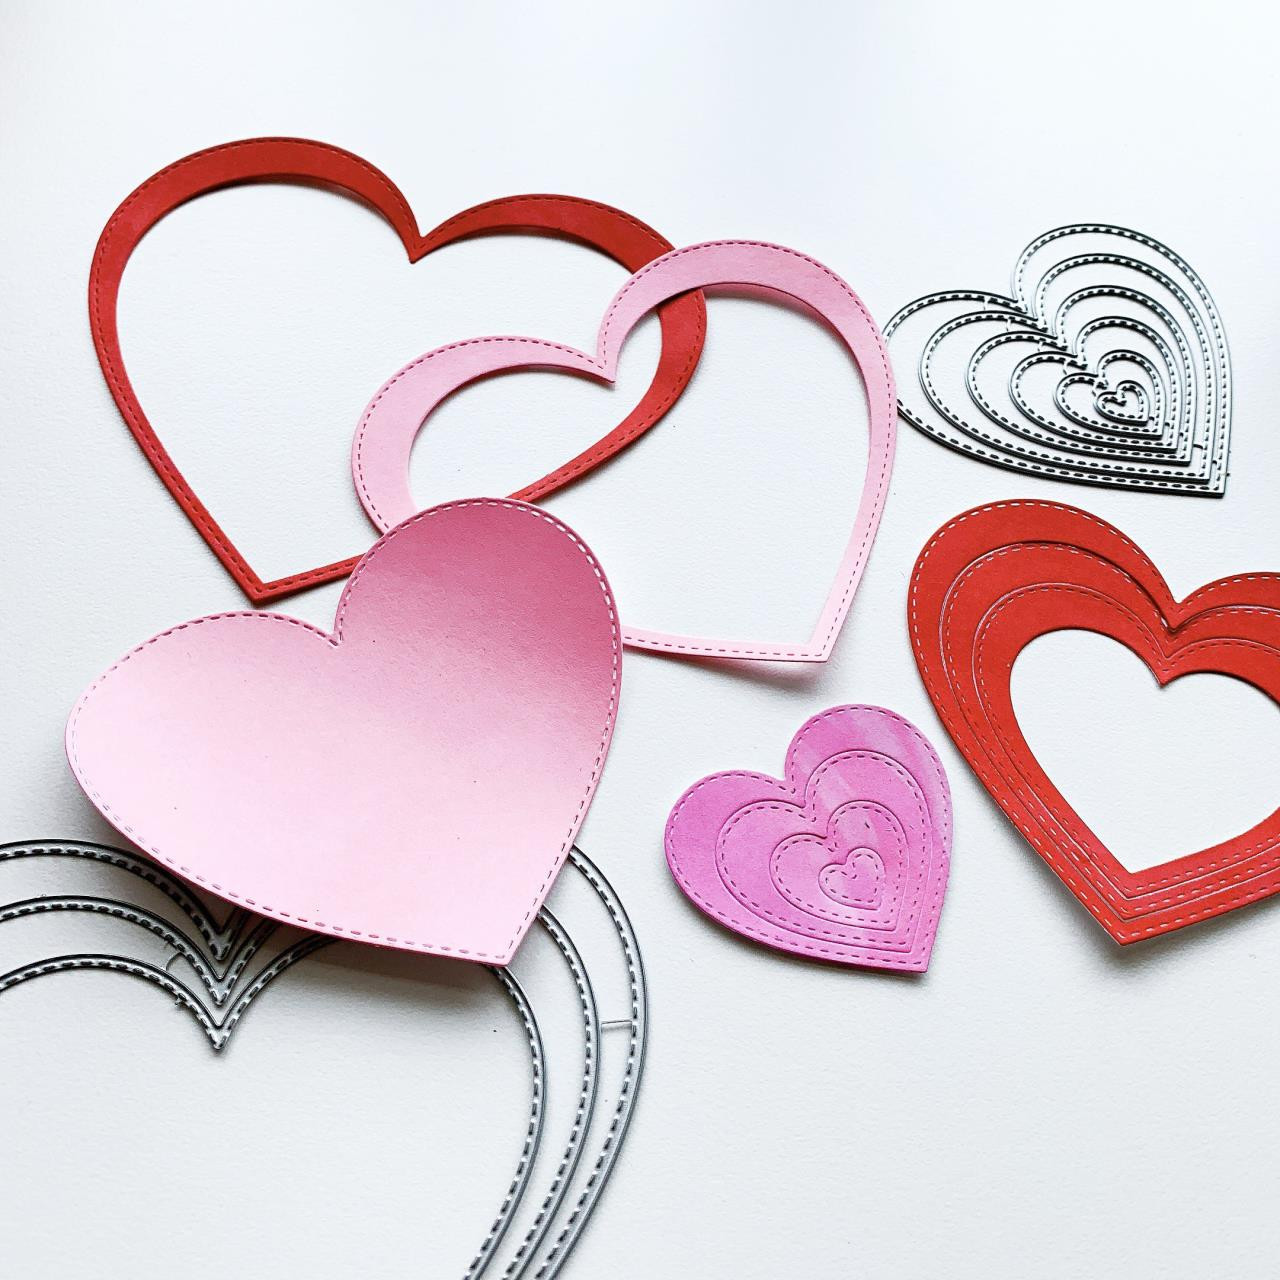 Nested Stitched Hearts, Catherine Pooler Dies -     819447027538